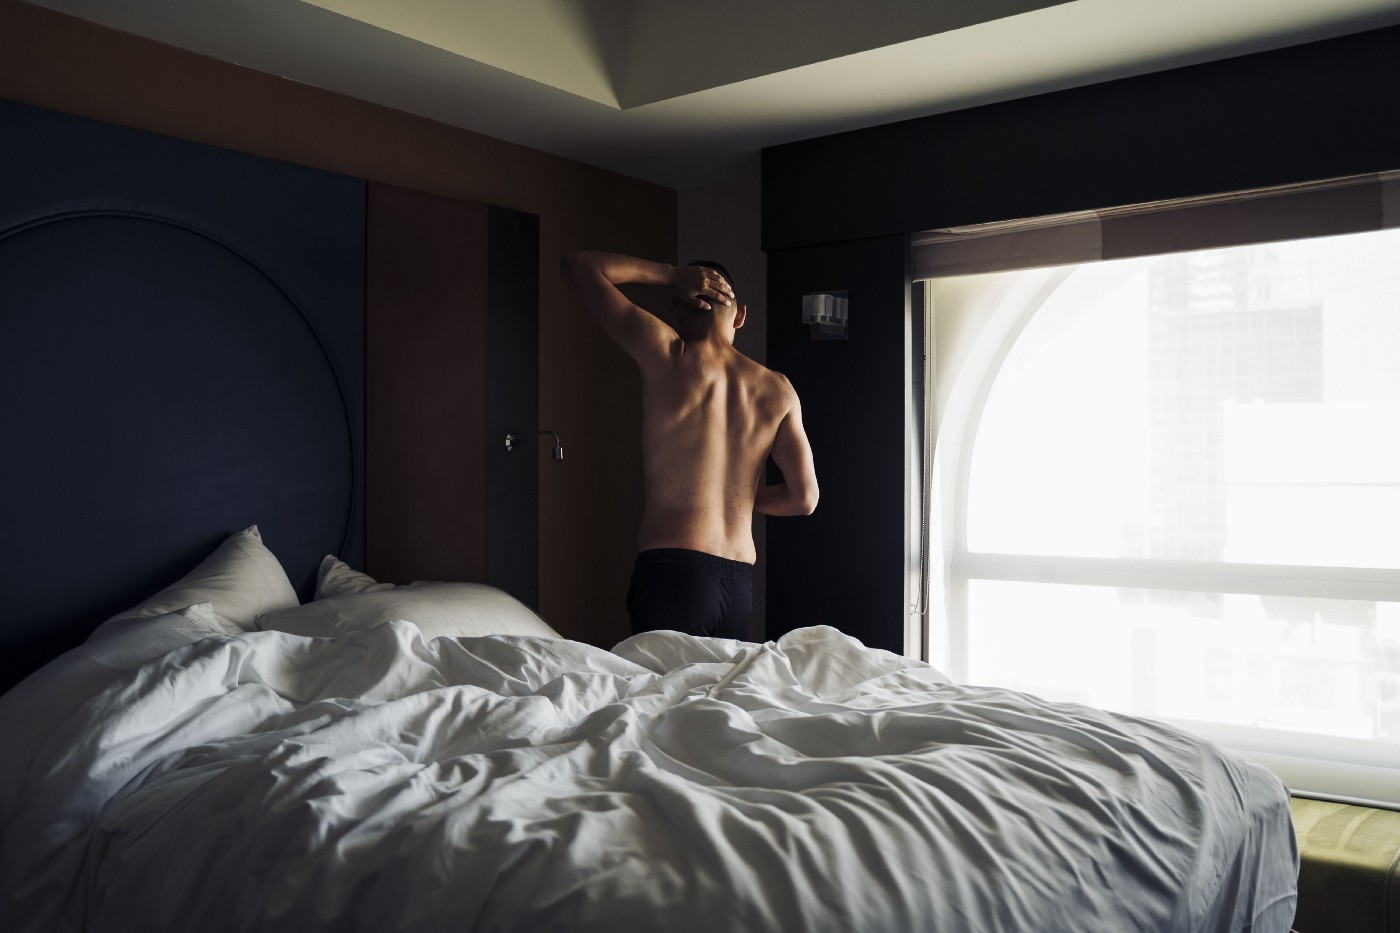 Guy getting out of bed